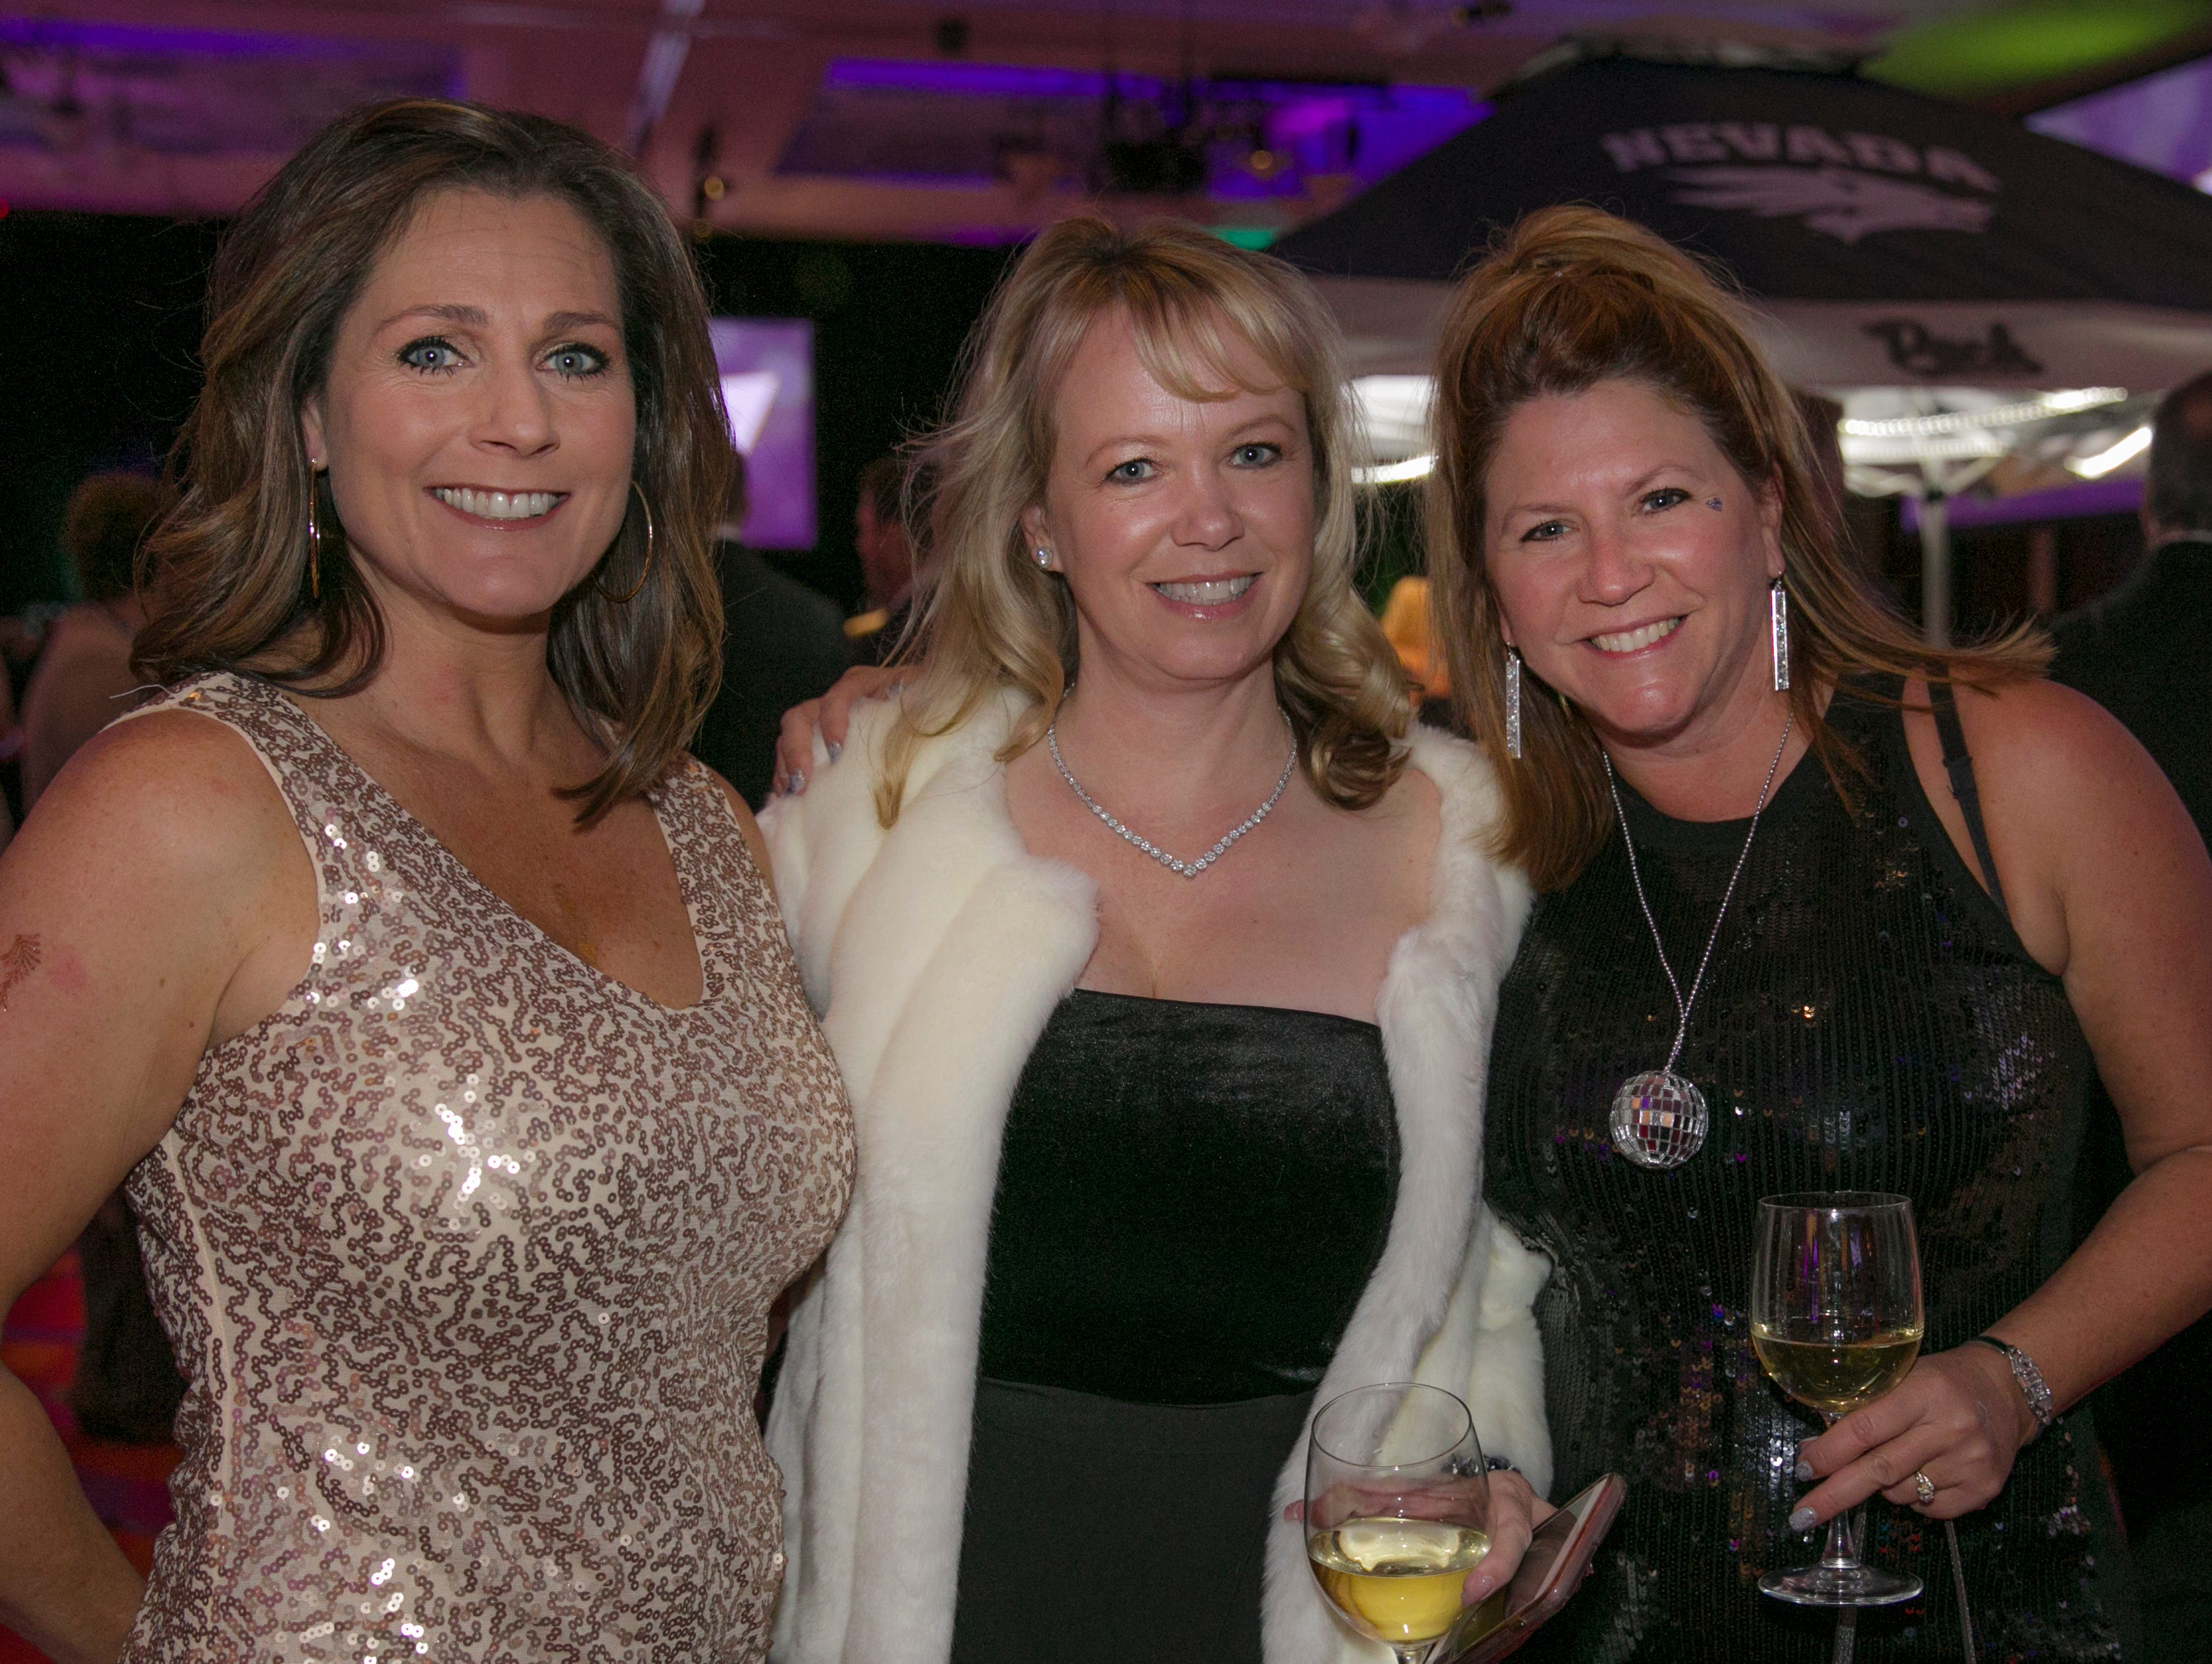 Tammy Barkowski, Billie Doyle and Laura Worrall during the 10th Annual Blue Tie Ball at the Peppermill Resort Spa Casino in Reno, NV on Friday night, Feb. 1, 2019.